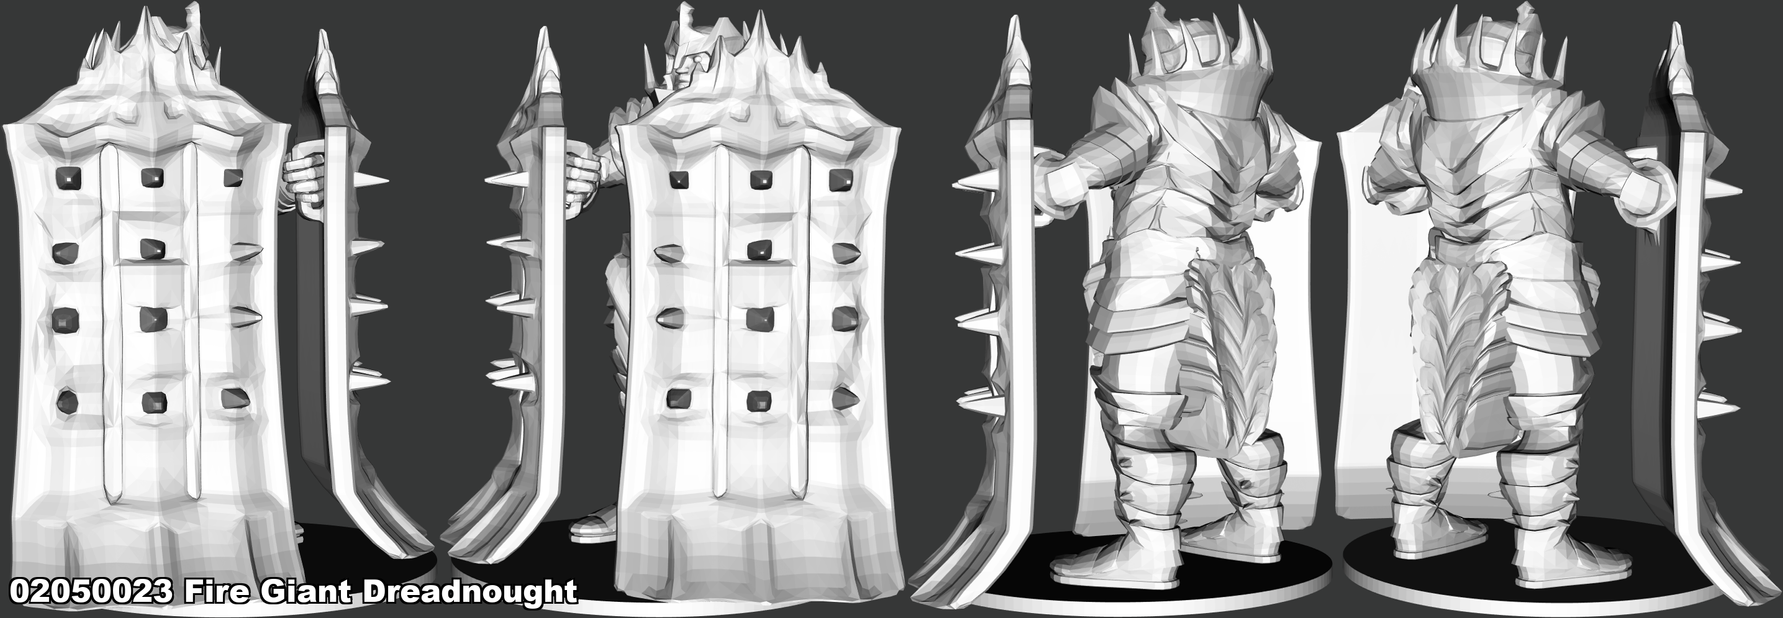 02050023 Fire Giant Dreadnought.png